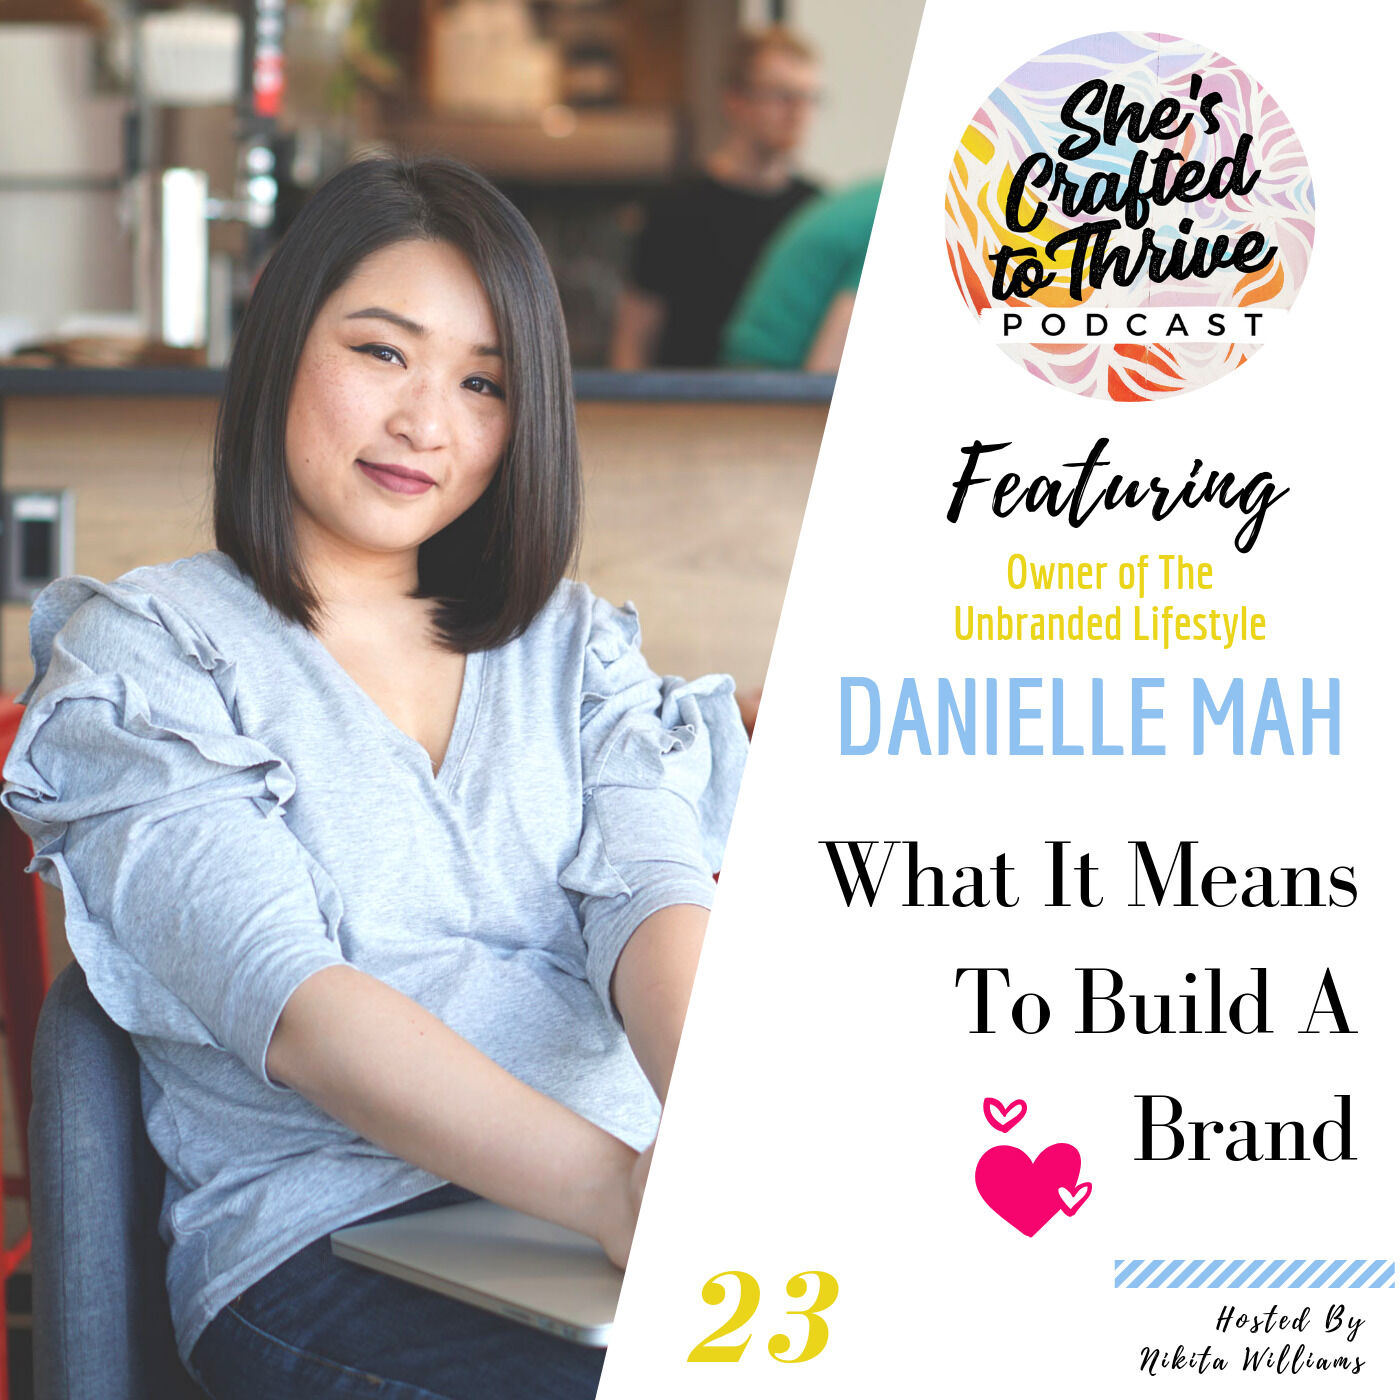 What It Means To Build A Brand